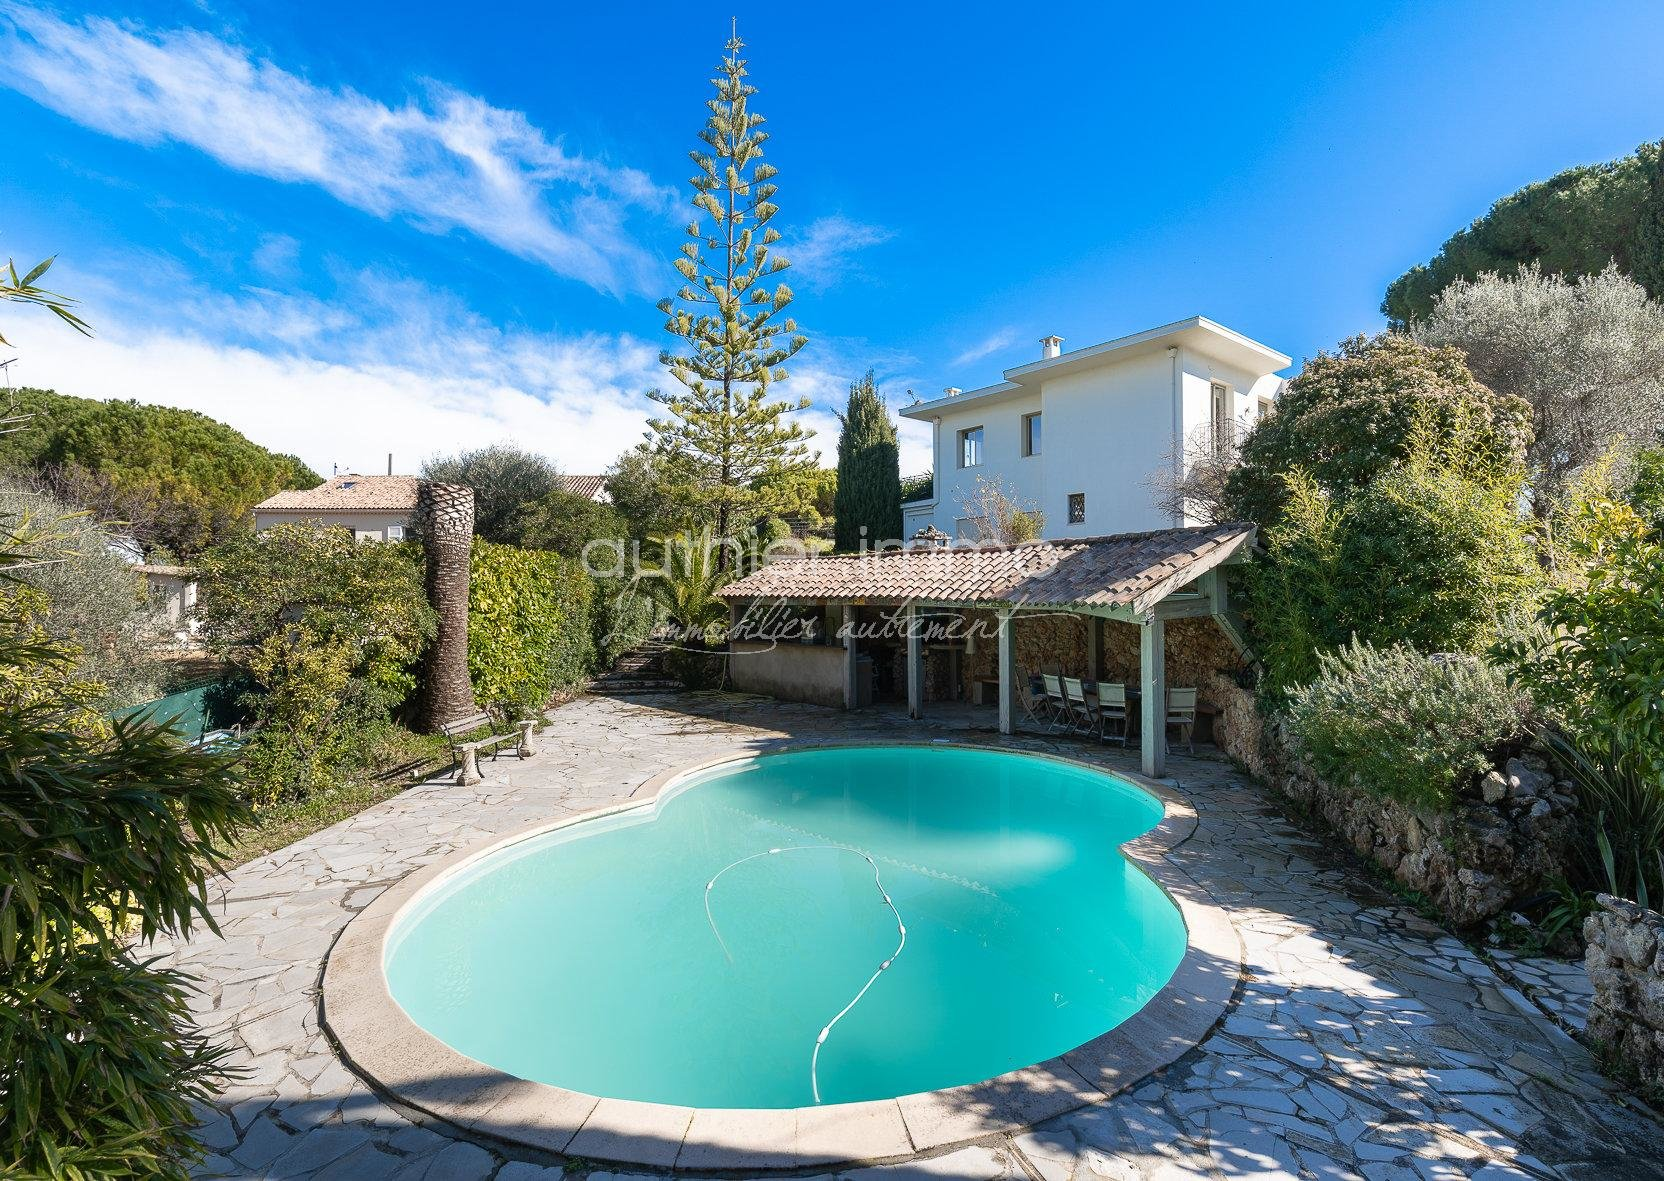 Sale house of character revisited, in a natural setting with swimming pool